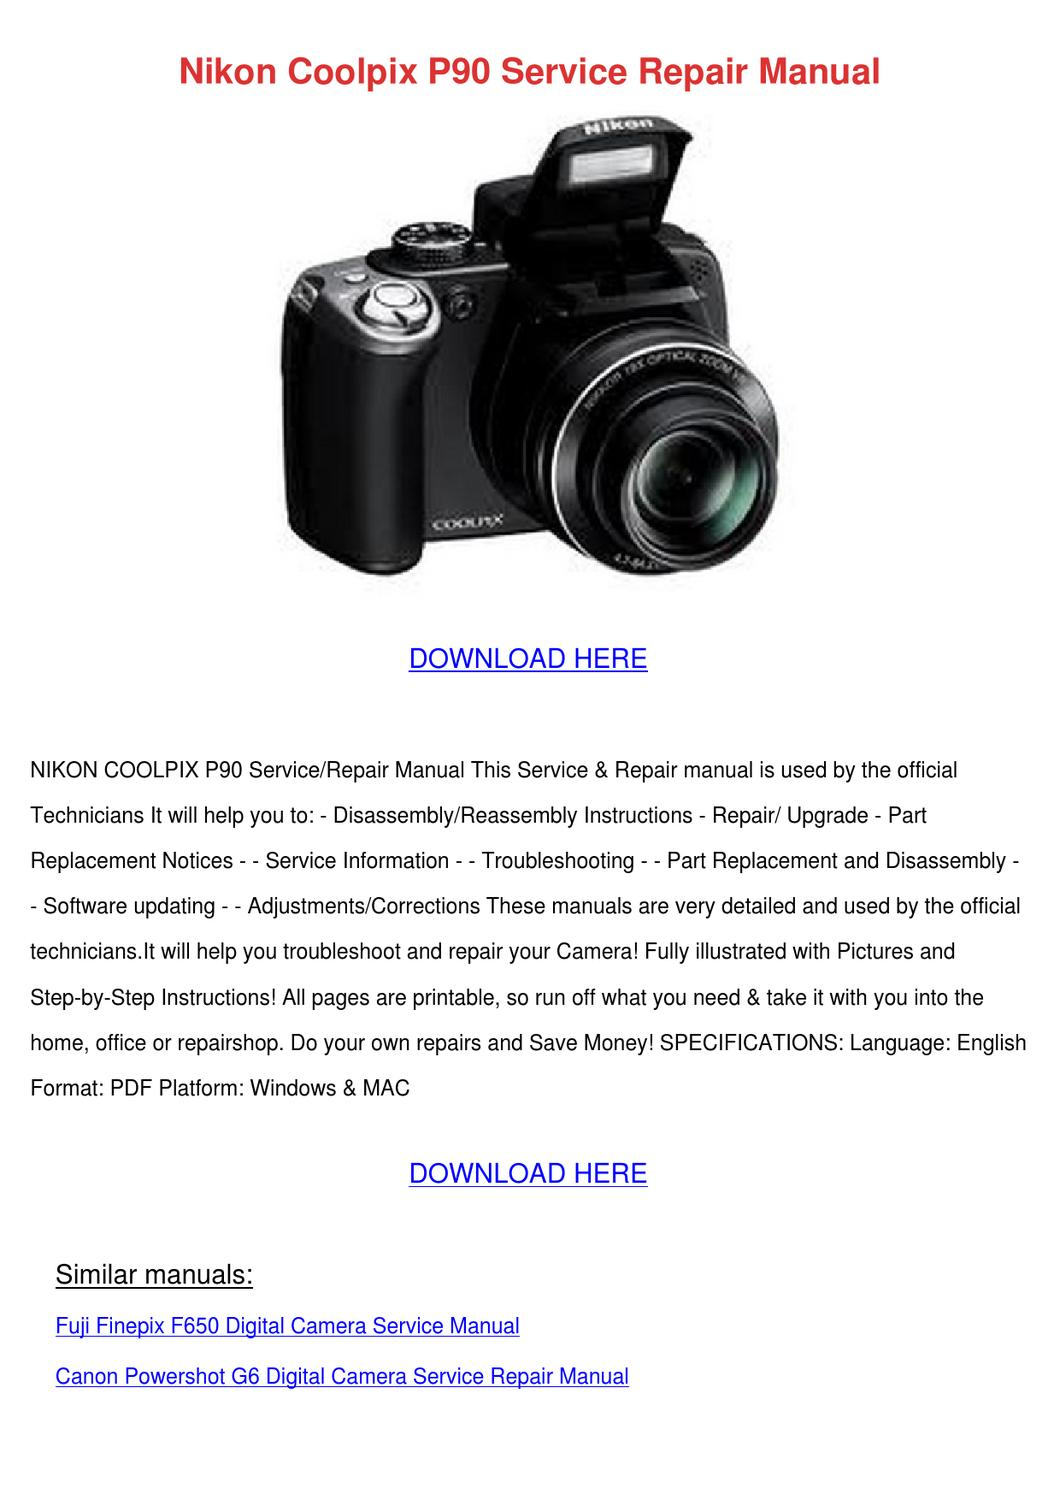 Nikon Coolpix P90 Service Repair Manual by John JohnChimento - issuu